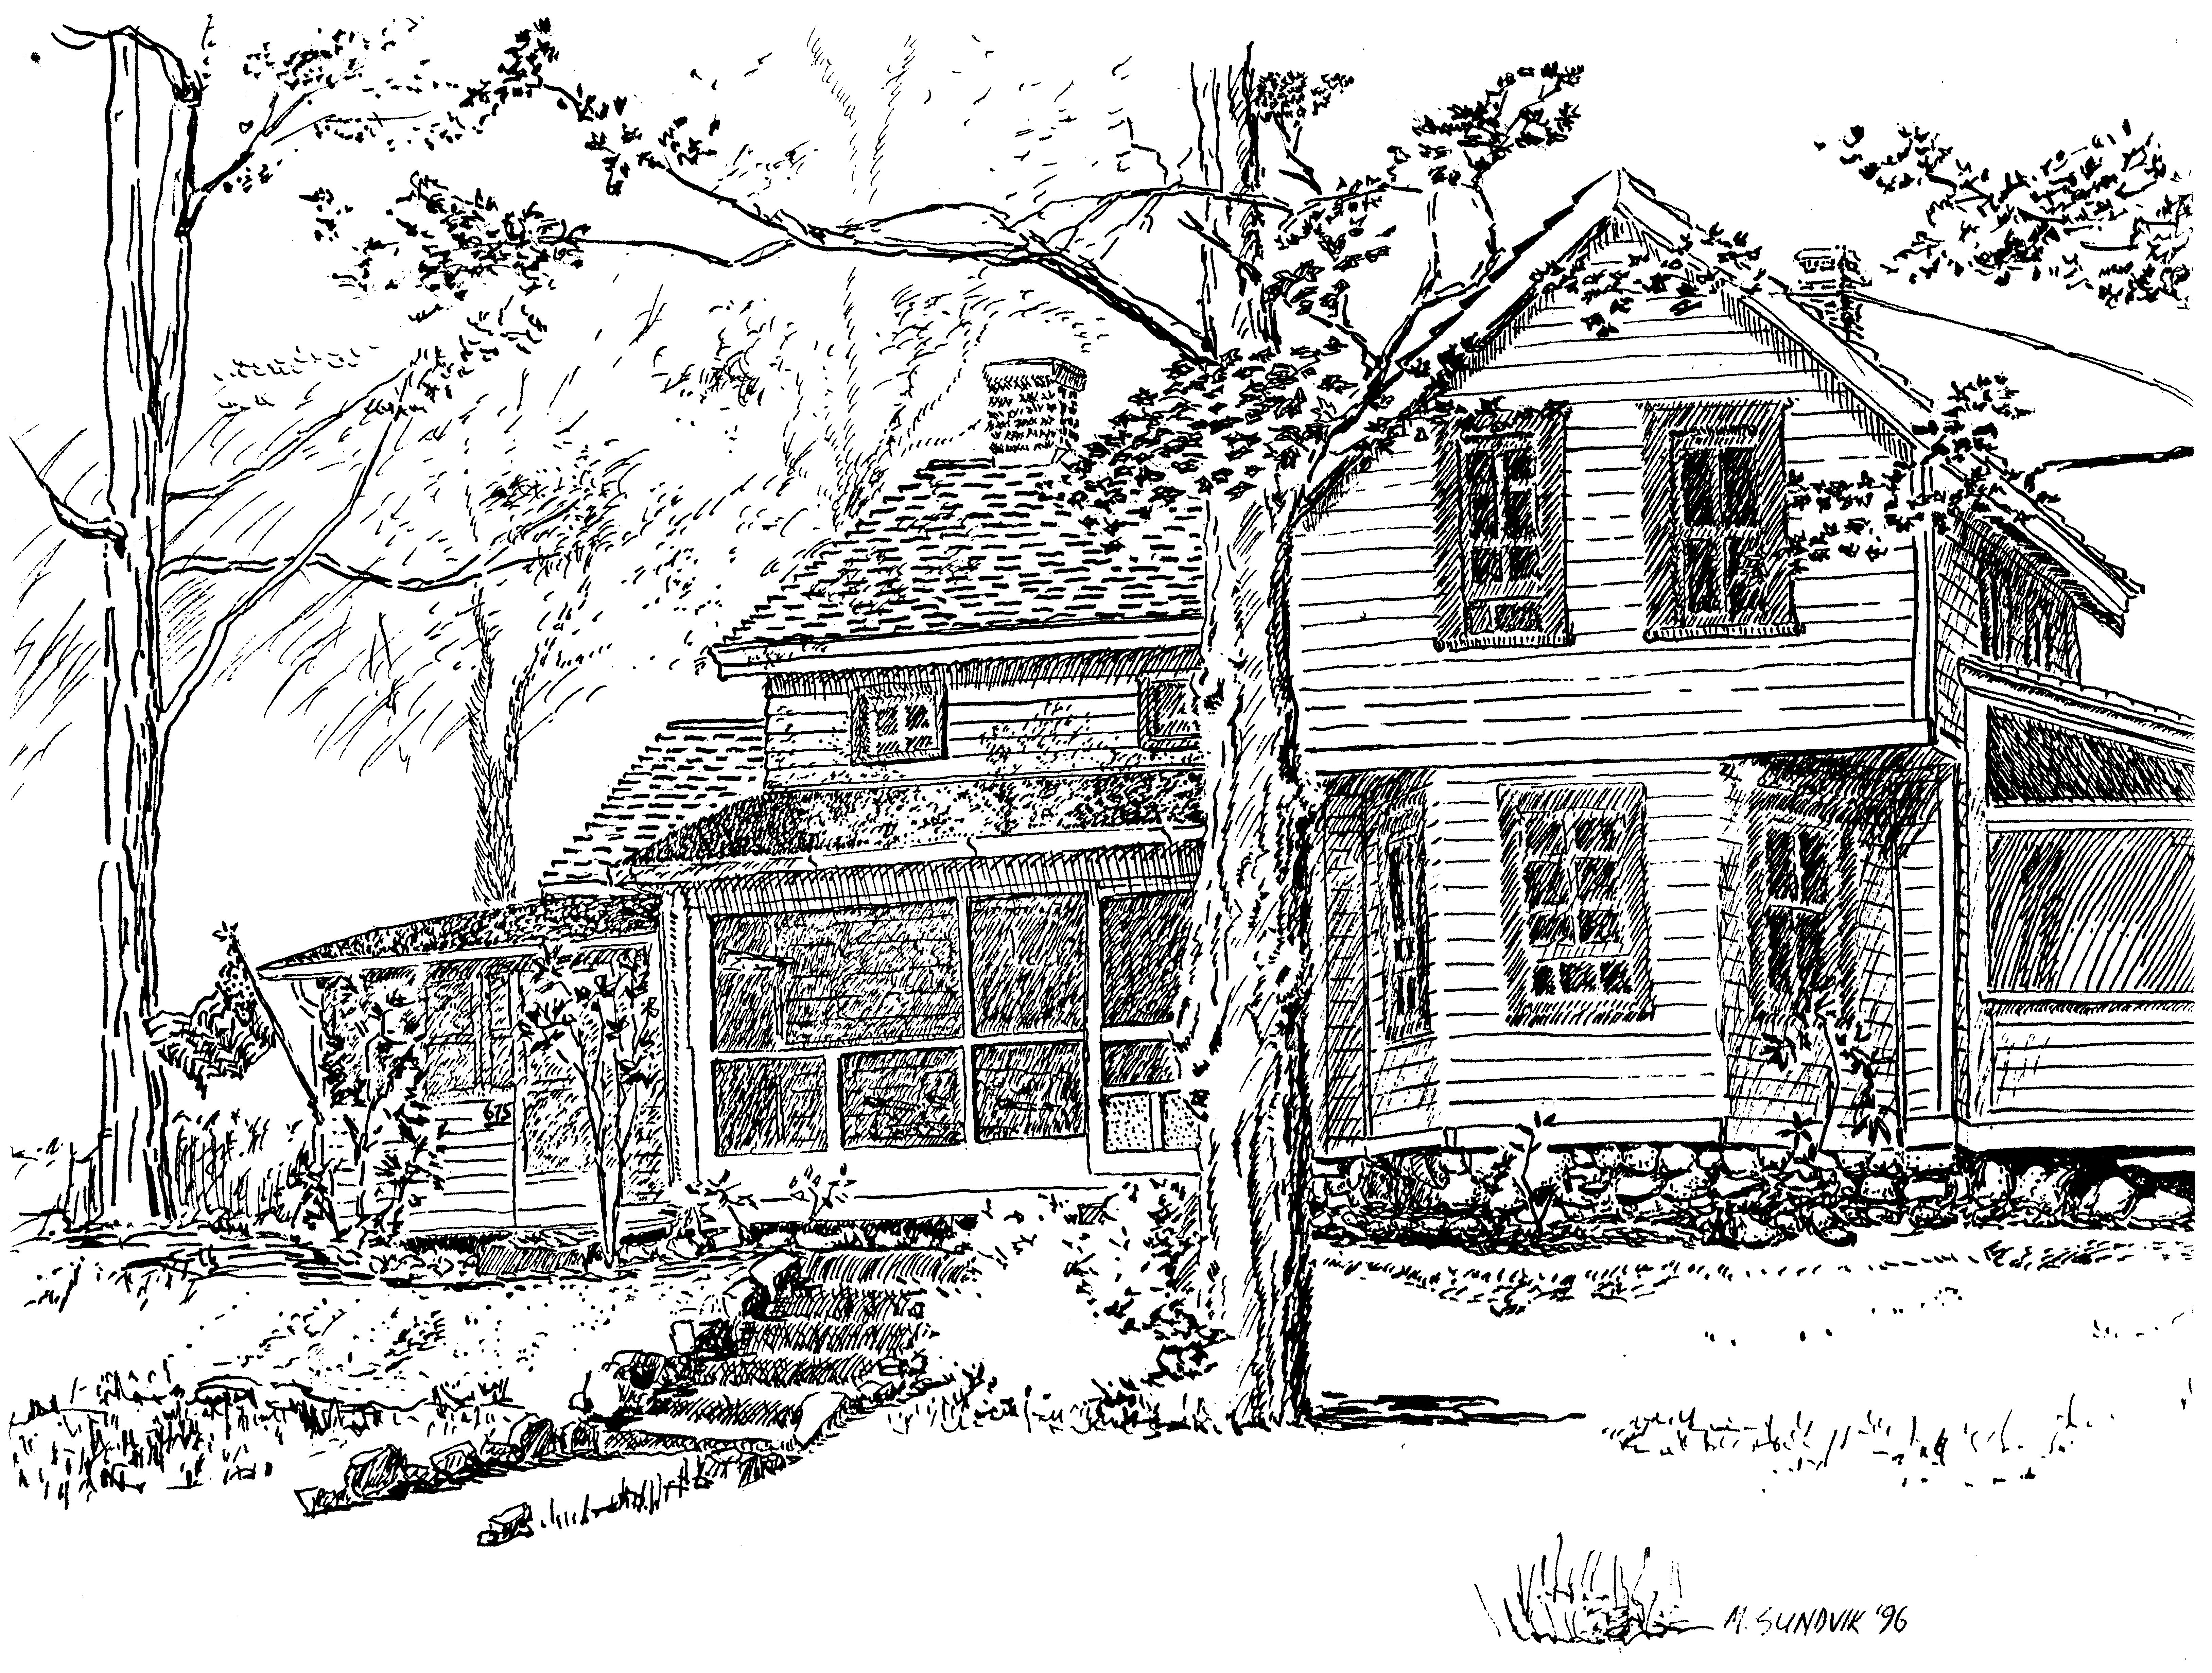 Michael garr artwork the conklin house original drawing for Farm house drawings